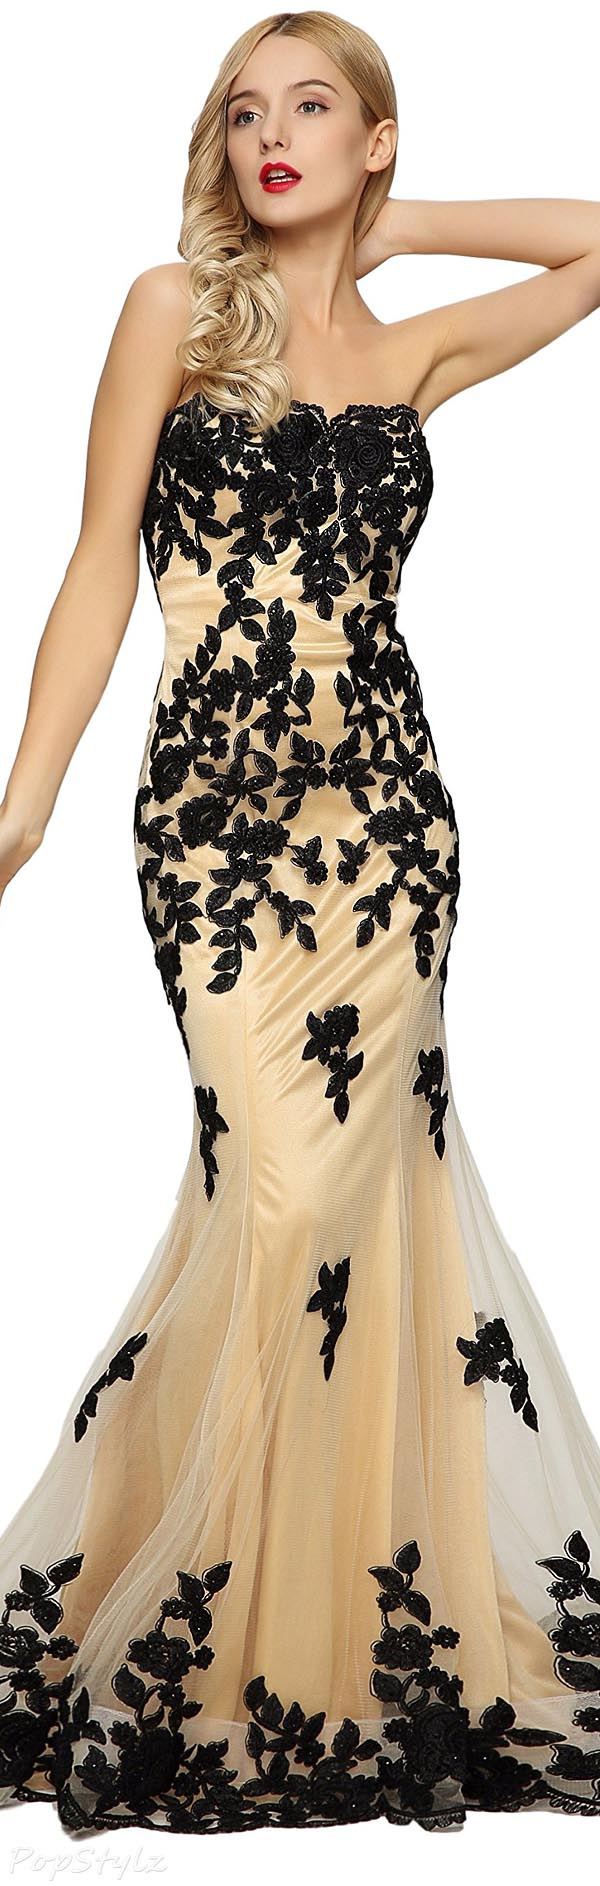 Meier Strapless Lace Beaded Formal Evening Gown